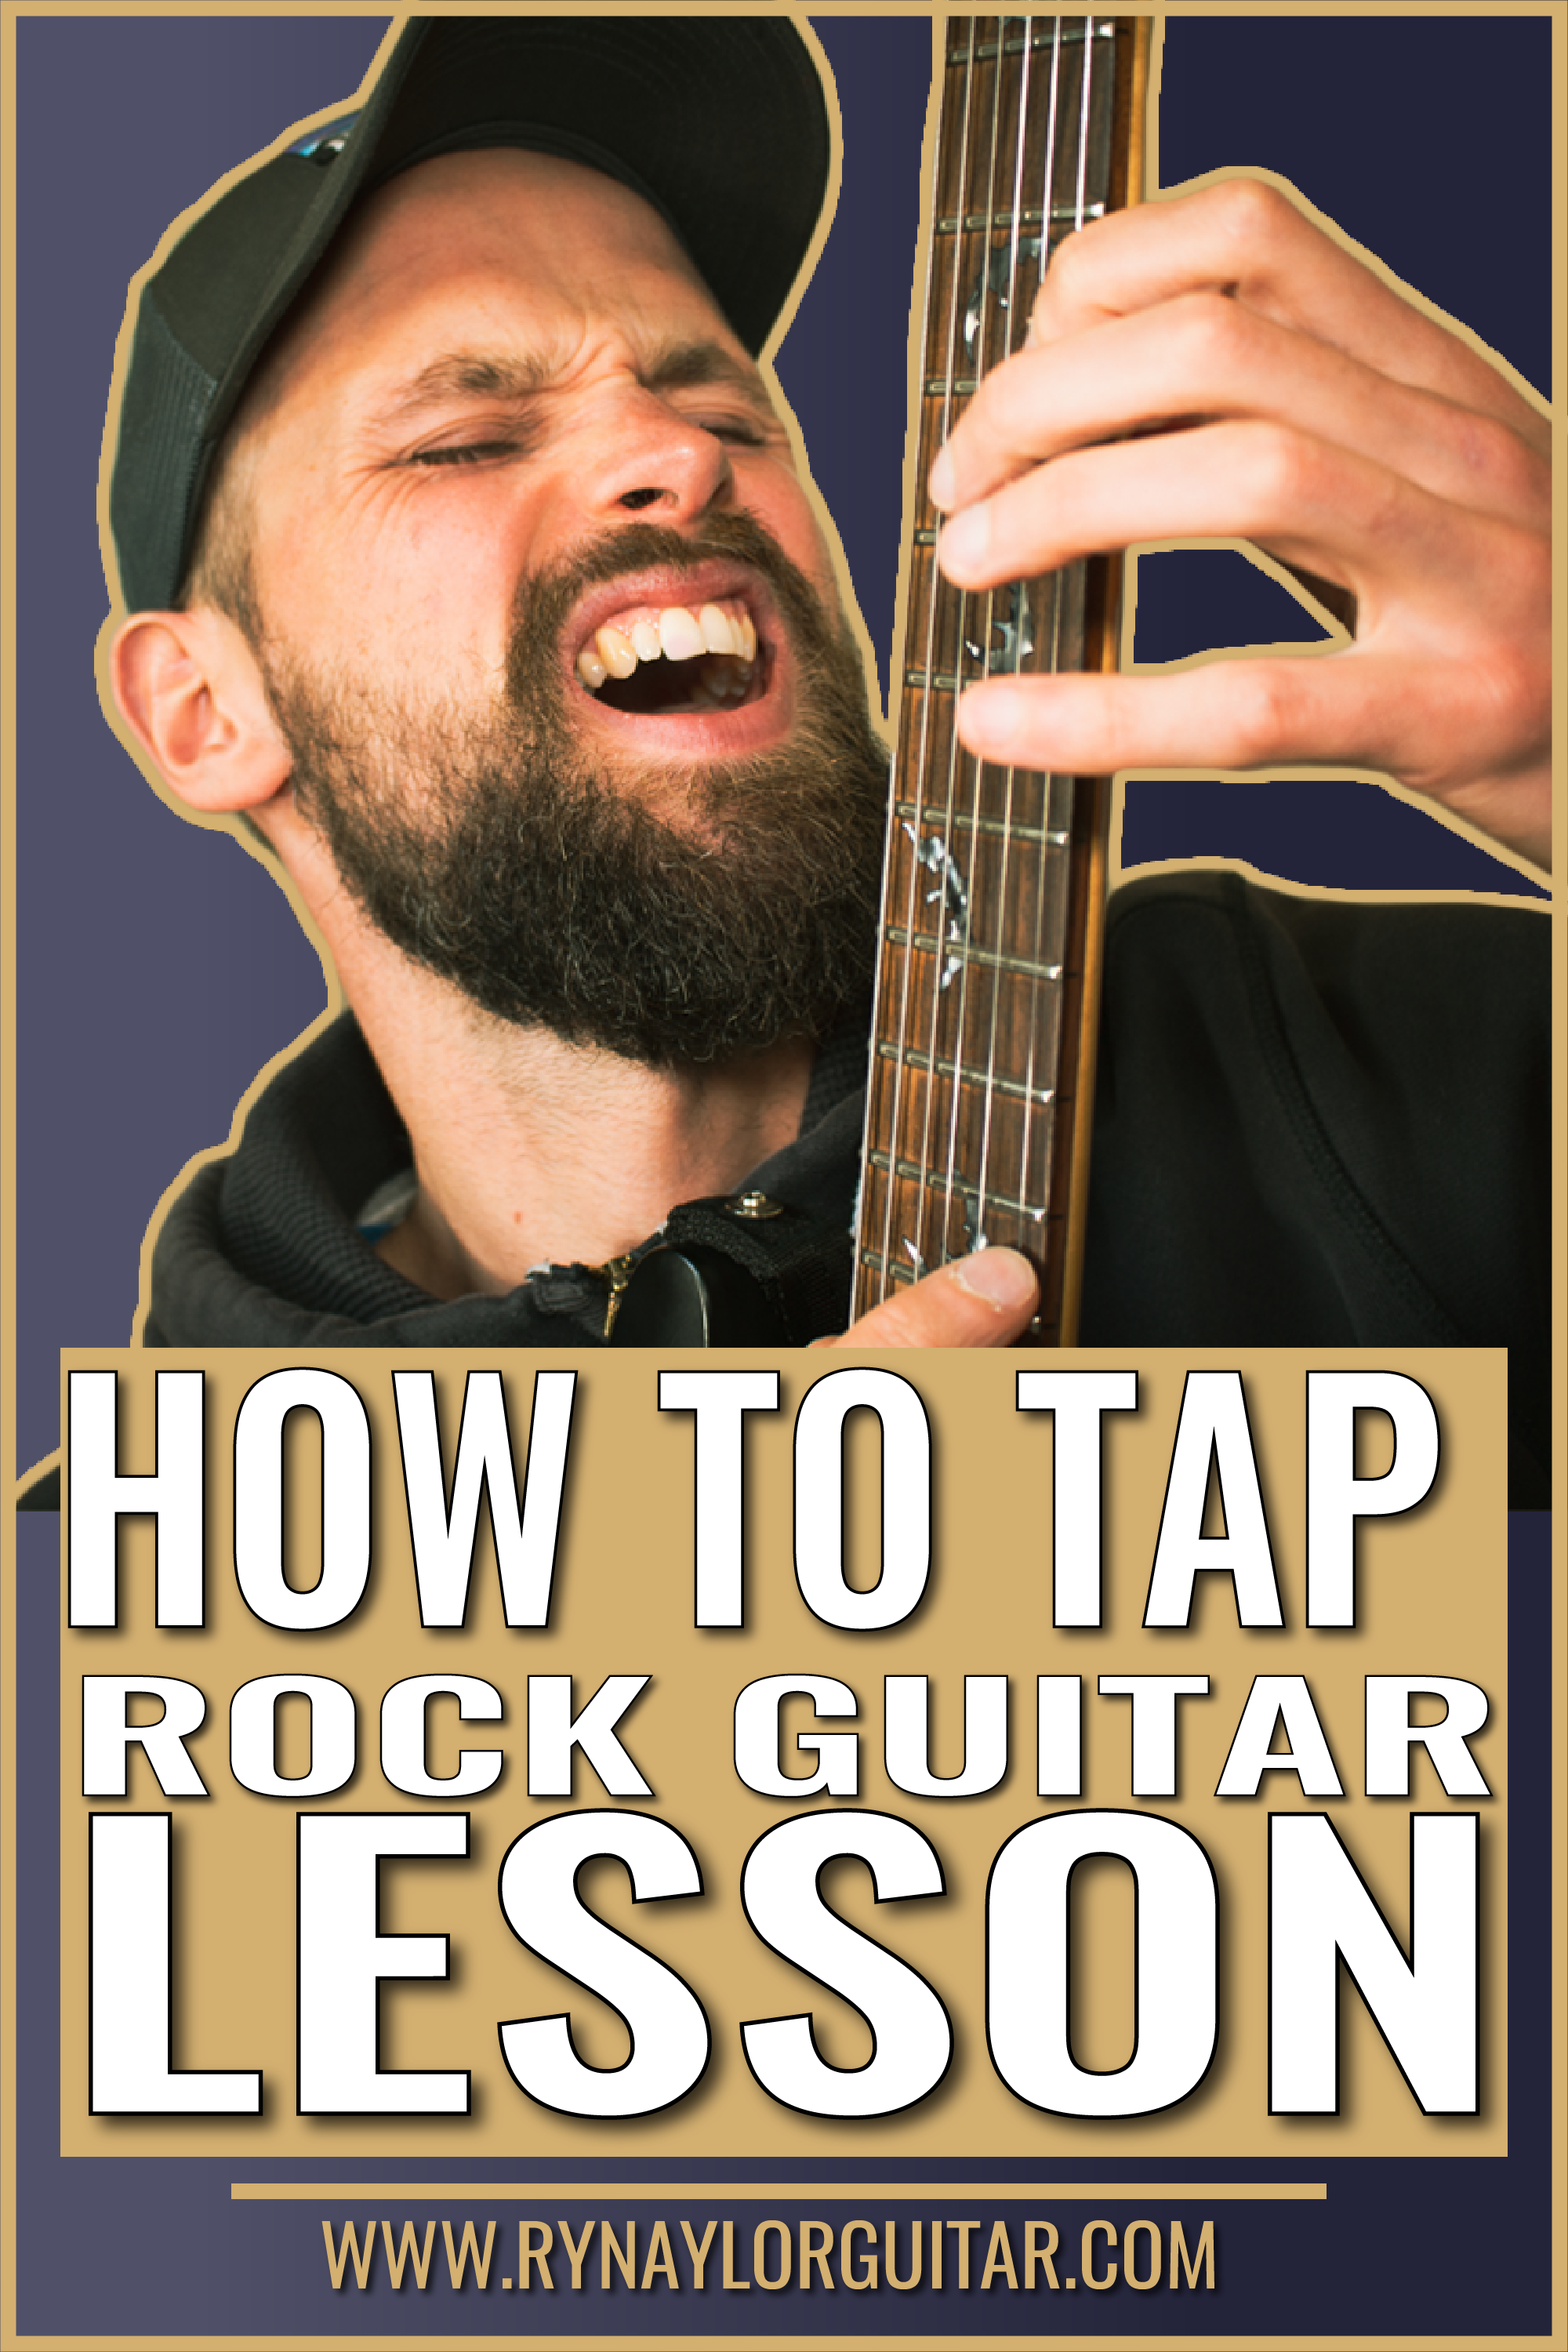 How to Tap Rock Guitar Lesson